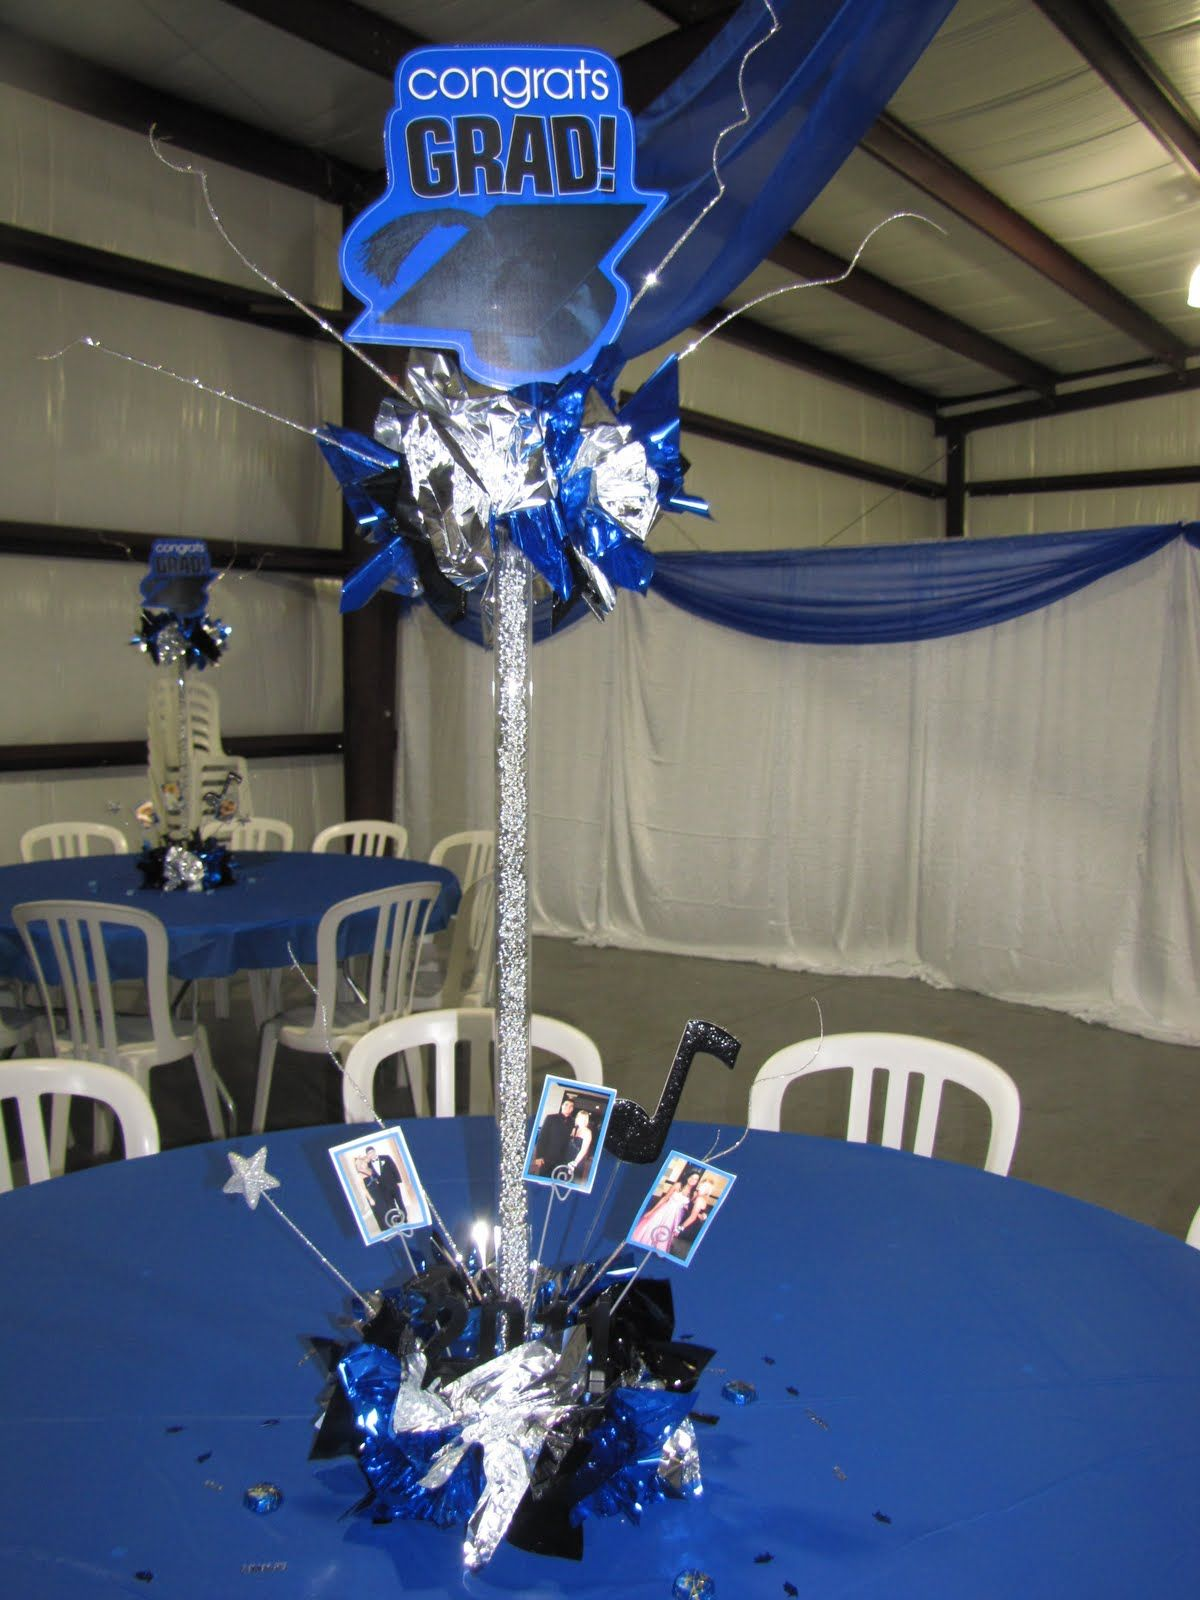 Graduation table decorations homemade - Homemade Graduation Centerpieces Party People Celebration Company Special Event Decor Custom Balloon